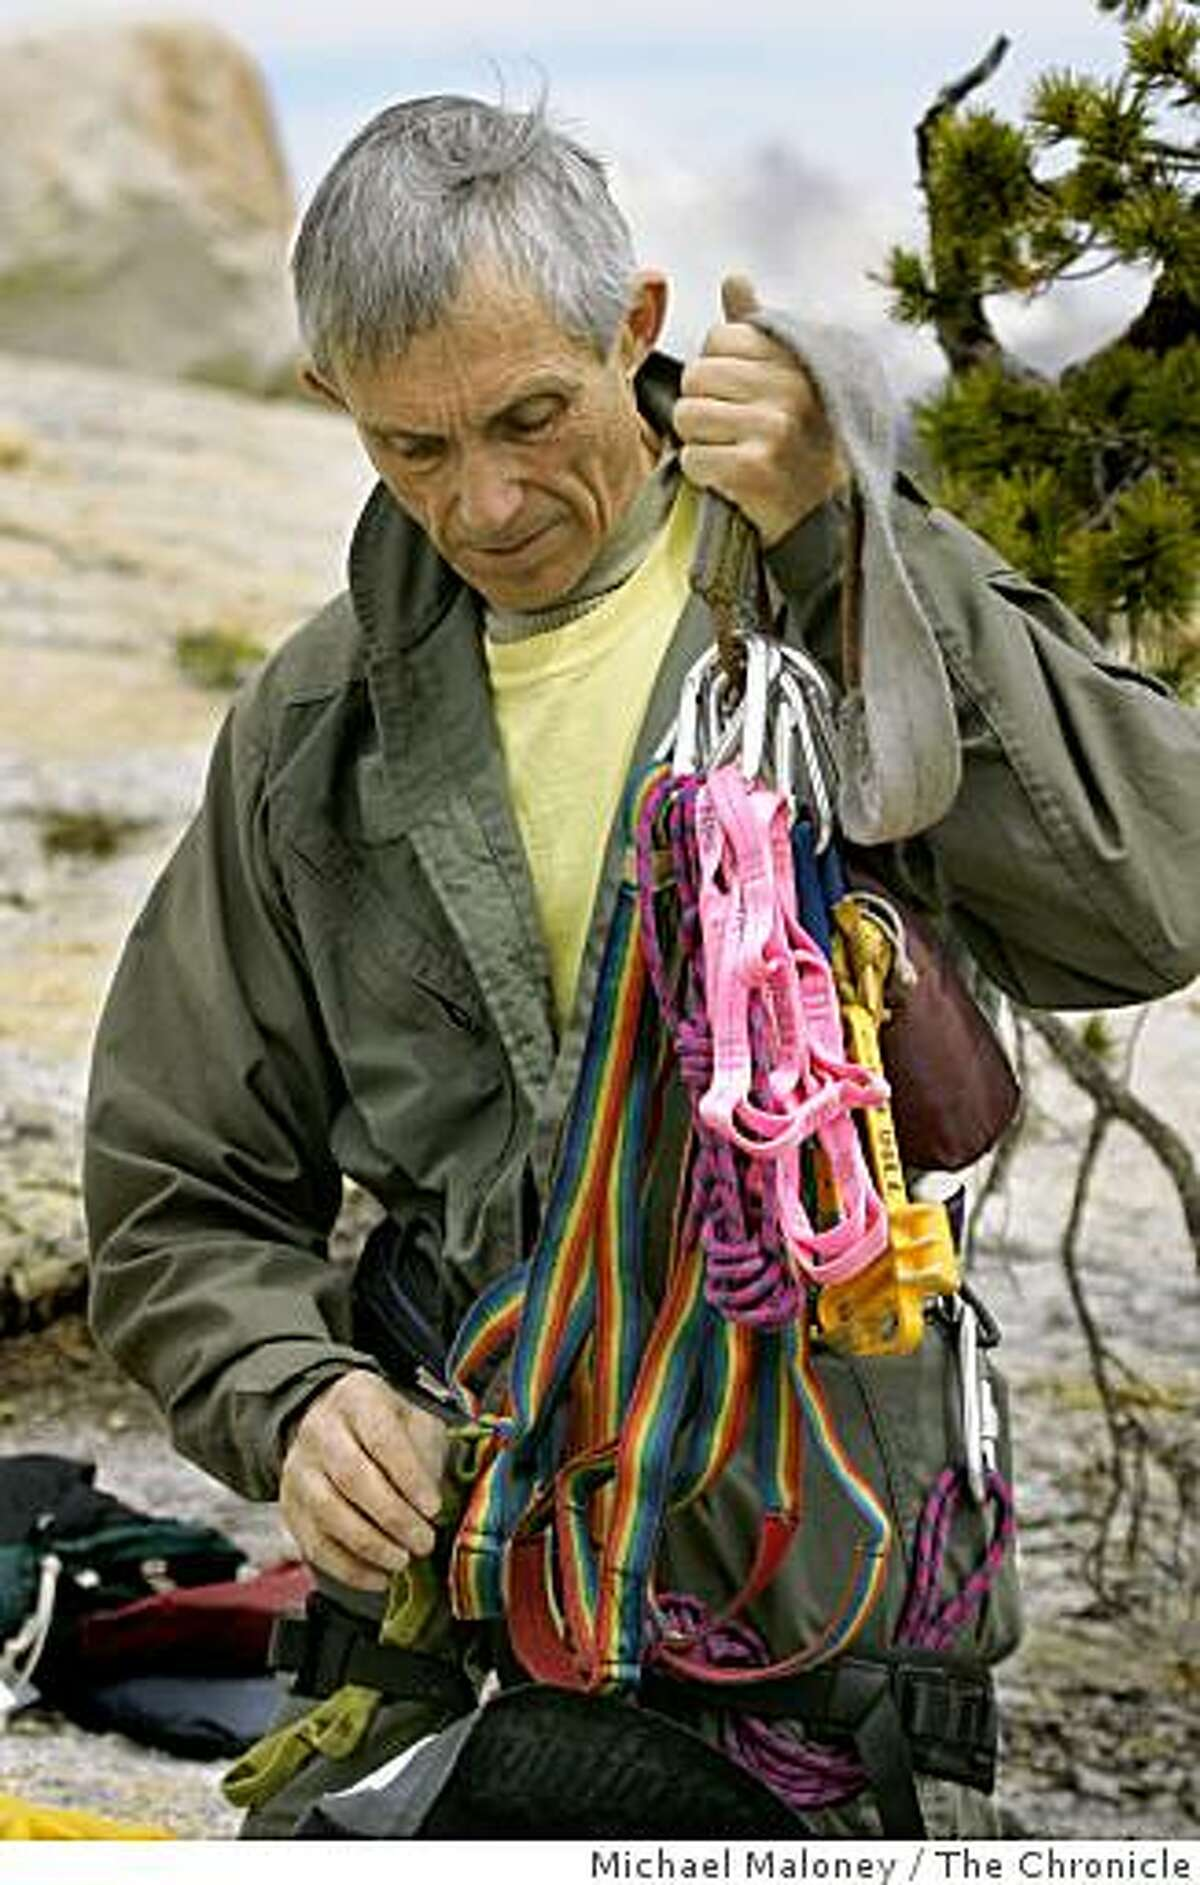 John Dill, 69 years old, checks his safety gear prior to the short haul training in Yosemite National Park on May 24, 2007. Dill is a member of the Yosemite National Park�s Search and Rescue Team